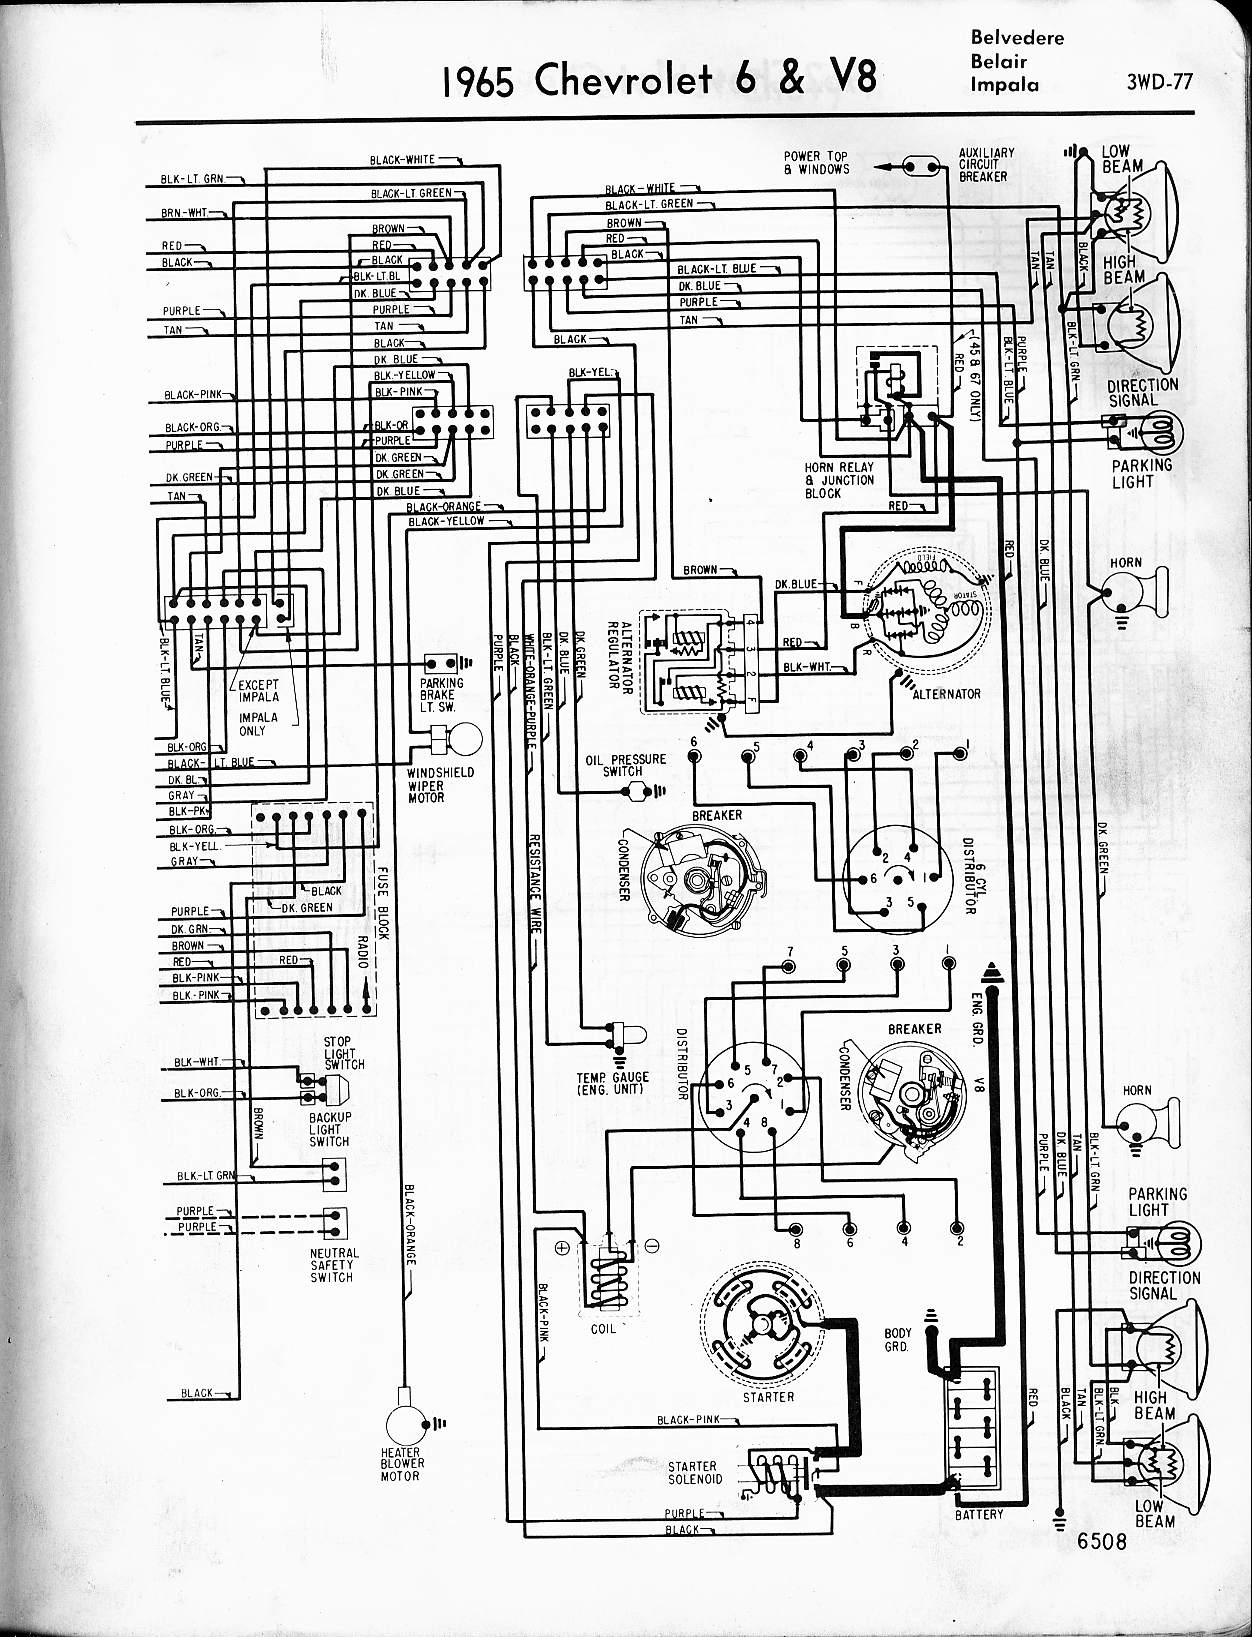 66 chevy pickup wiring diagram detailed wiring diagram1966 chevy truck wiring harness wiring diagram third level 74 chevy truck wiring diagram 1966 chevrolet